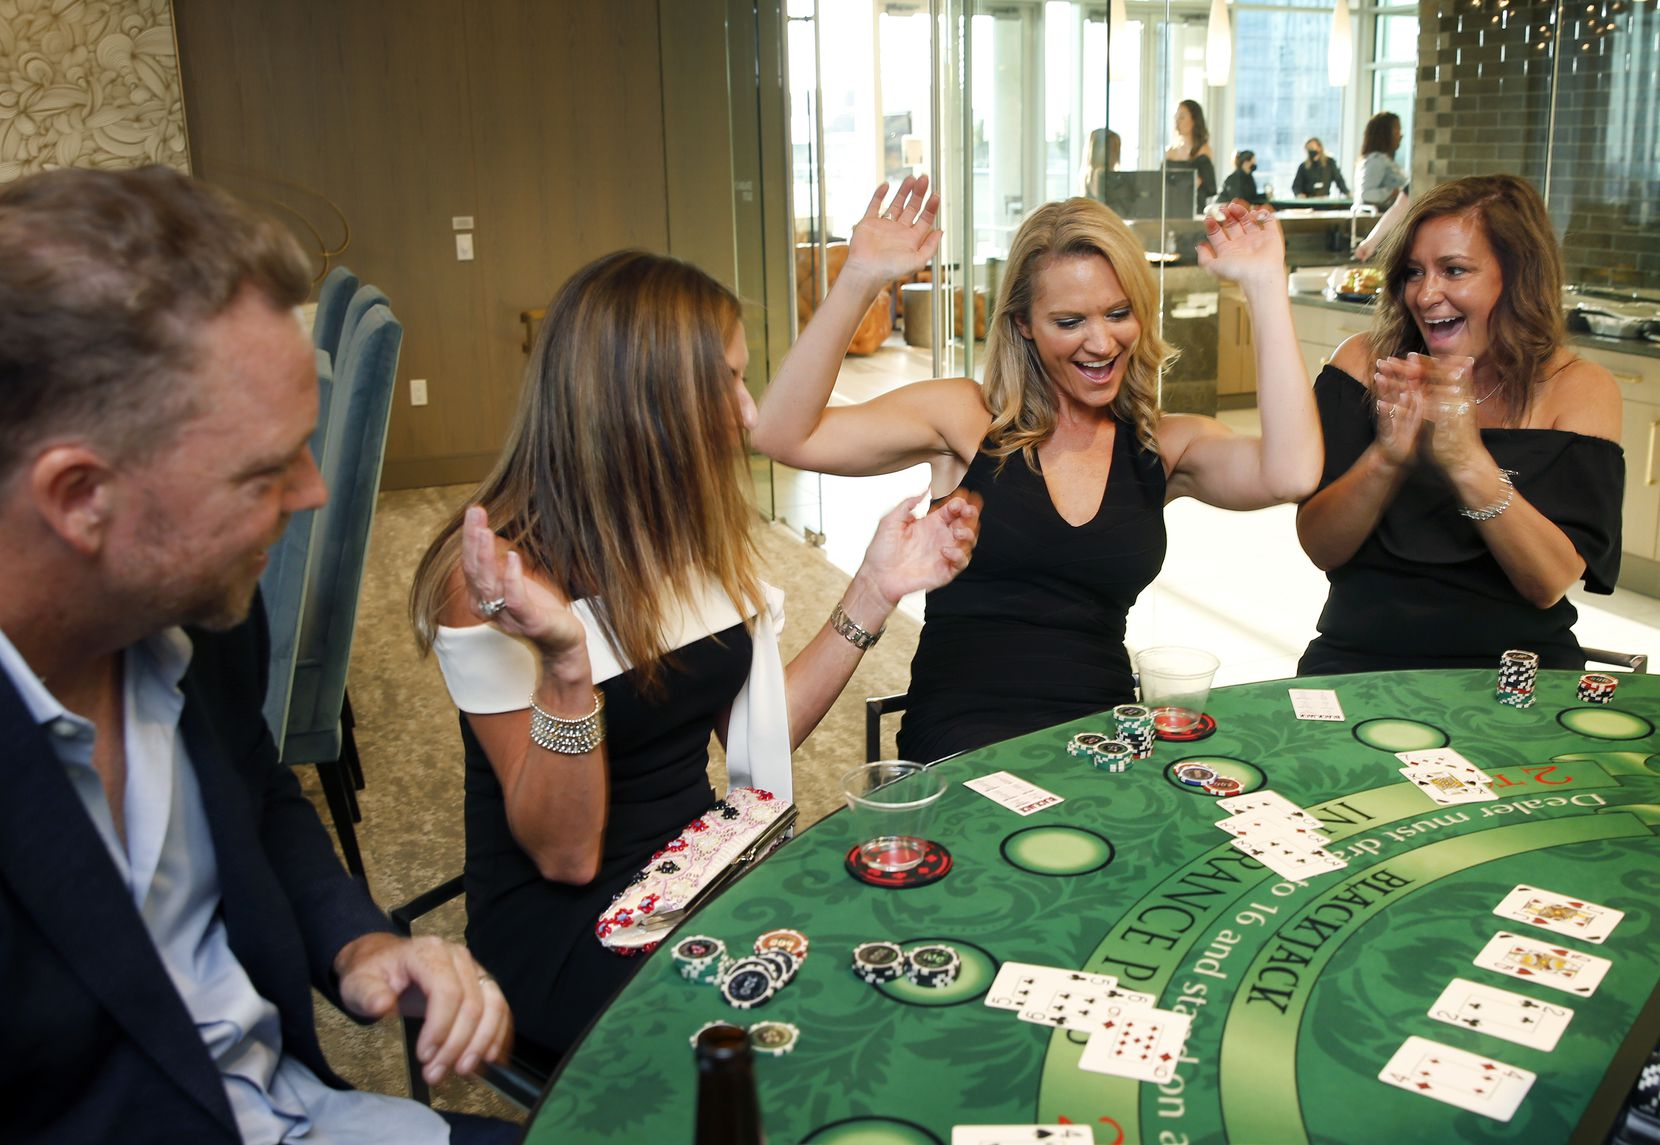 Monument Realty agents (from right) Angela Cunningham, Shannon Brownstein, Annmarie Eidman and owner Eddie Burns celebrate a winning blackjack hand on casino night.